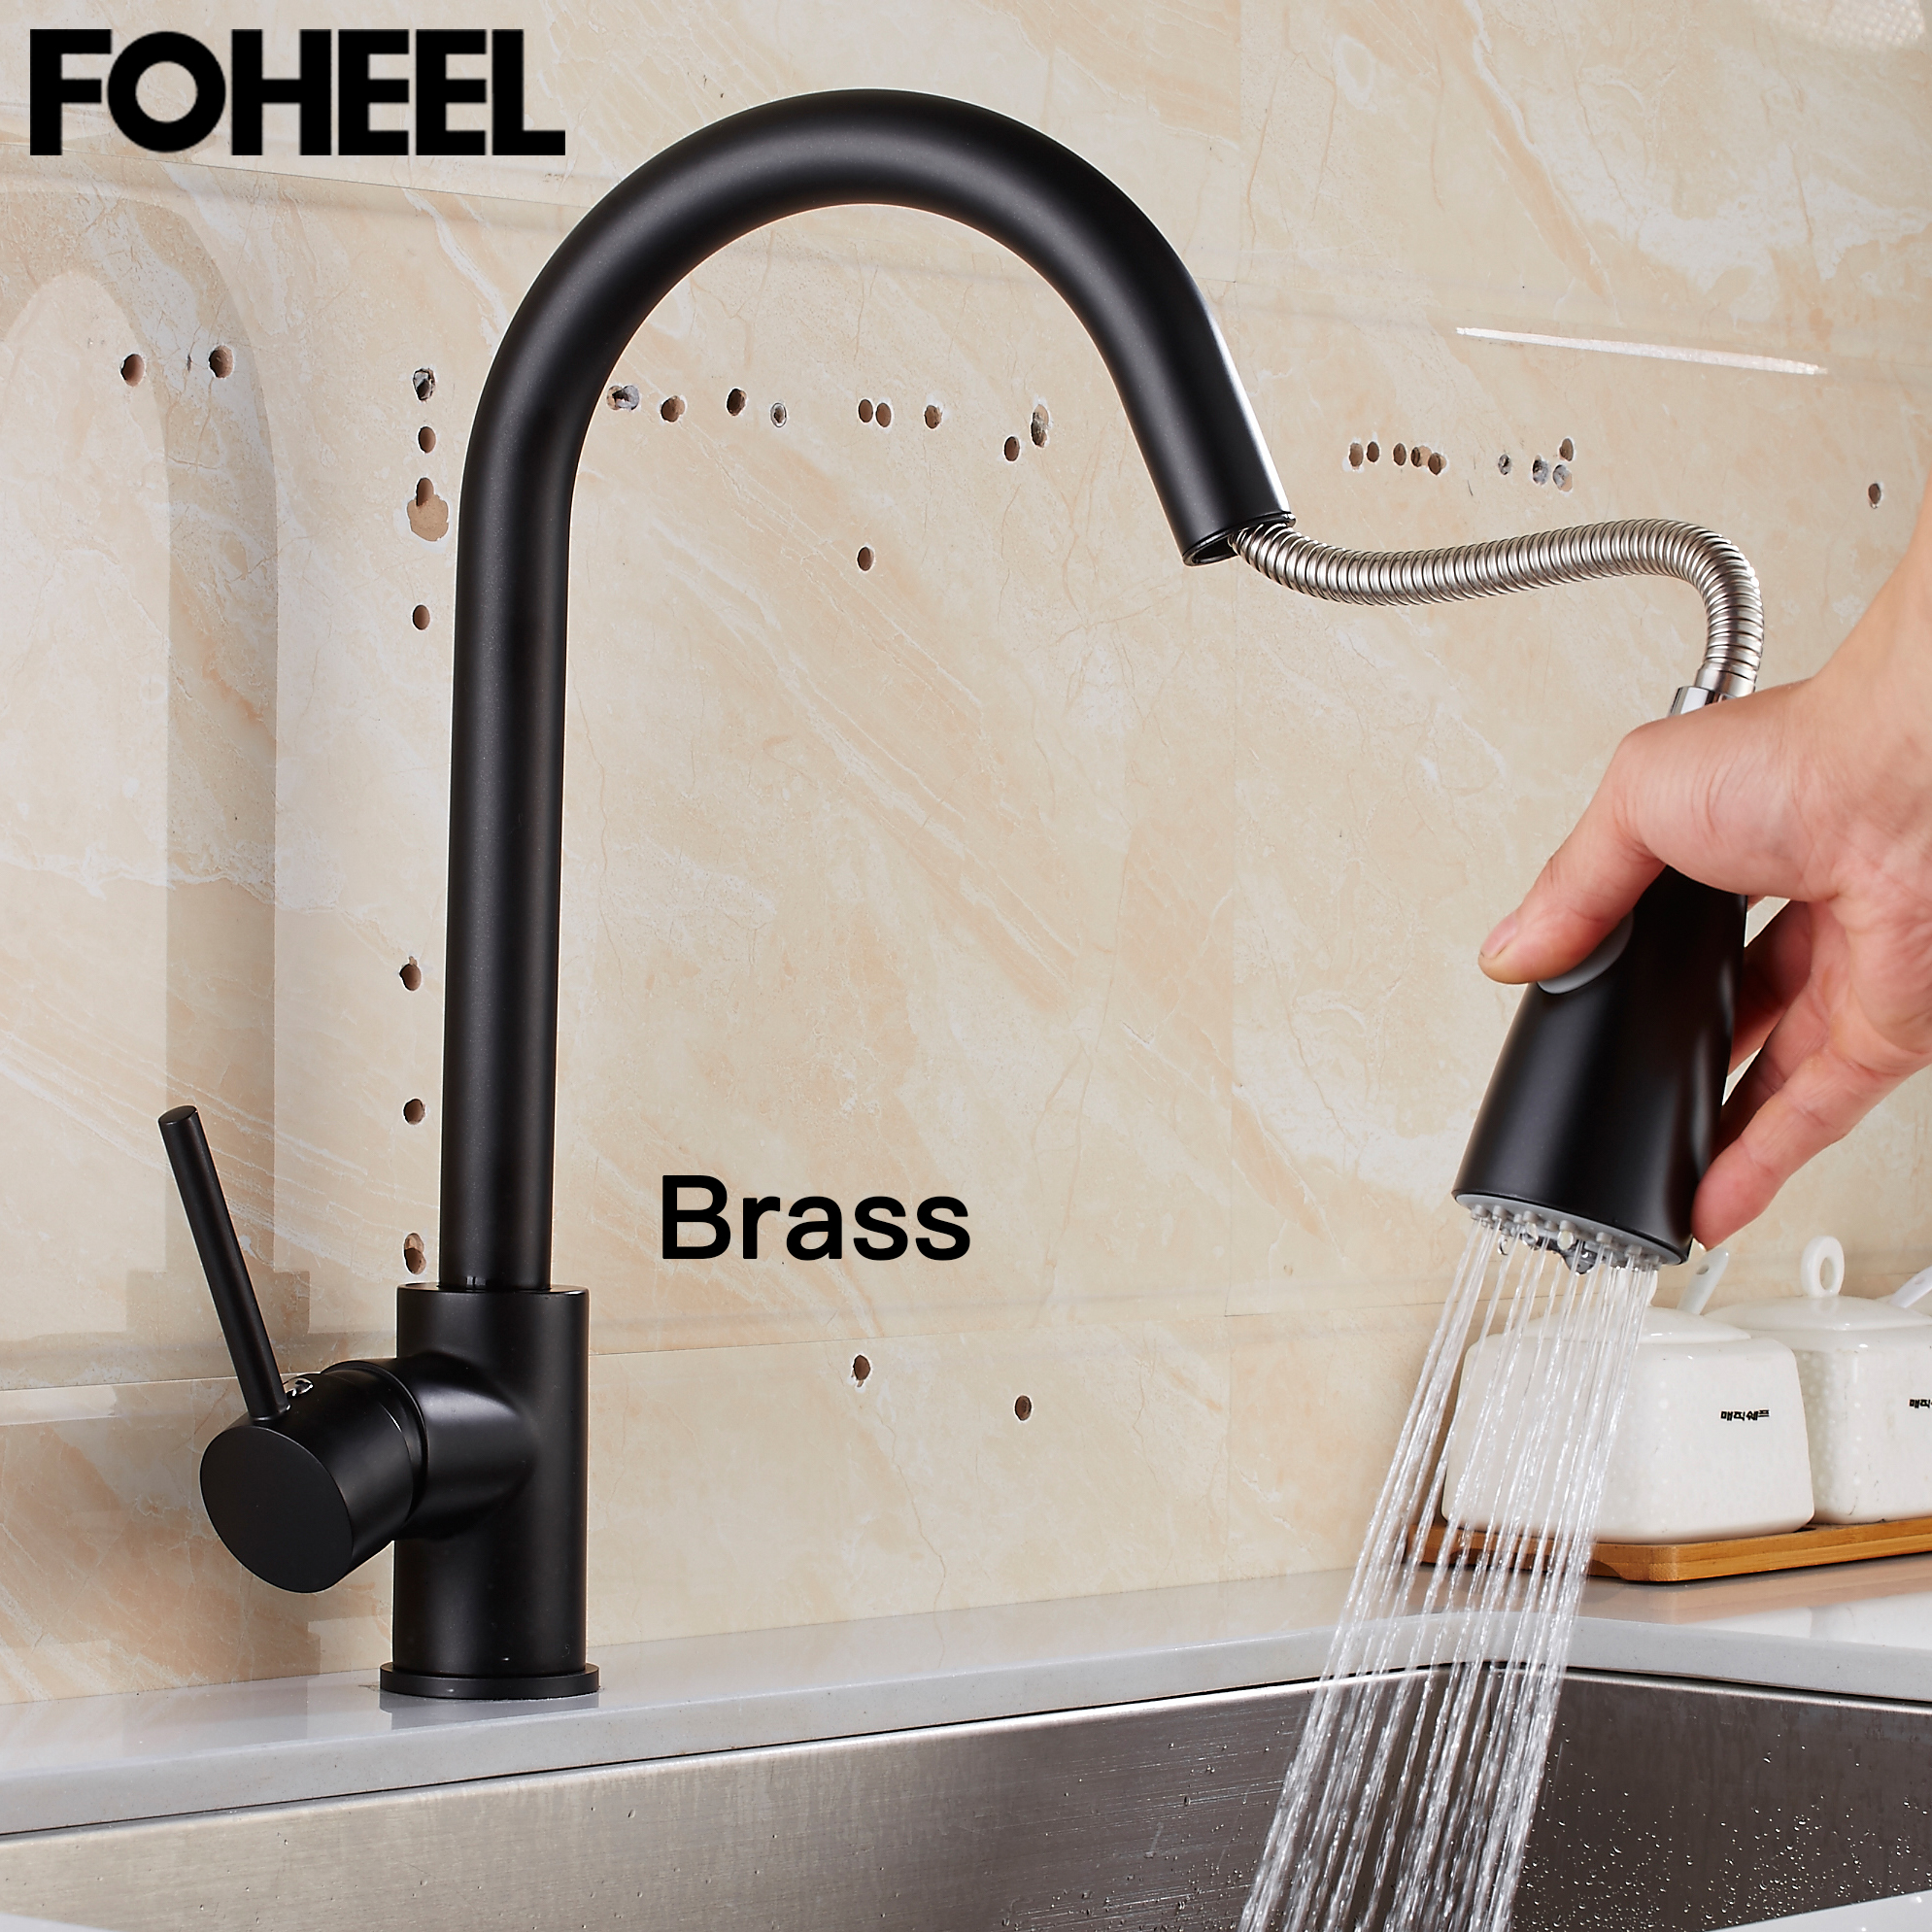 FOHEEL Pull Out Kitchen Black Kitchen Faucets Single Handle Tap Single Hole Handle Swivel 360 Degree Water Mixer Tap Mixer Tap